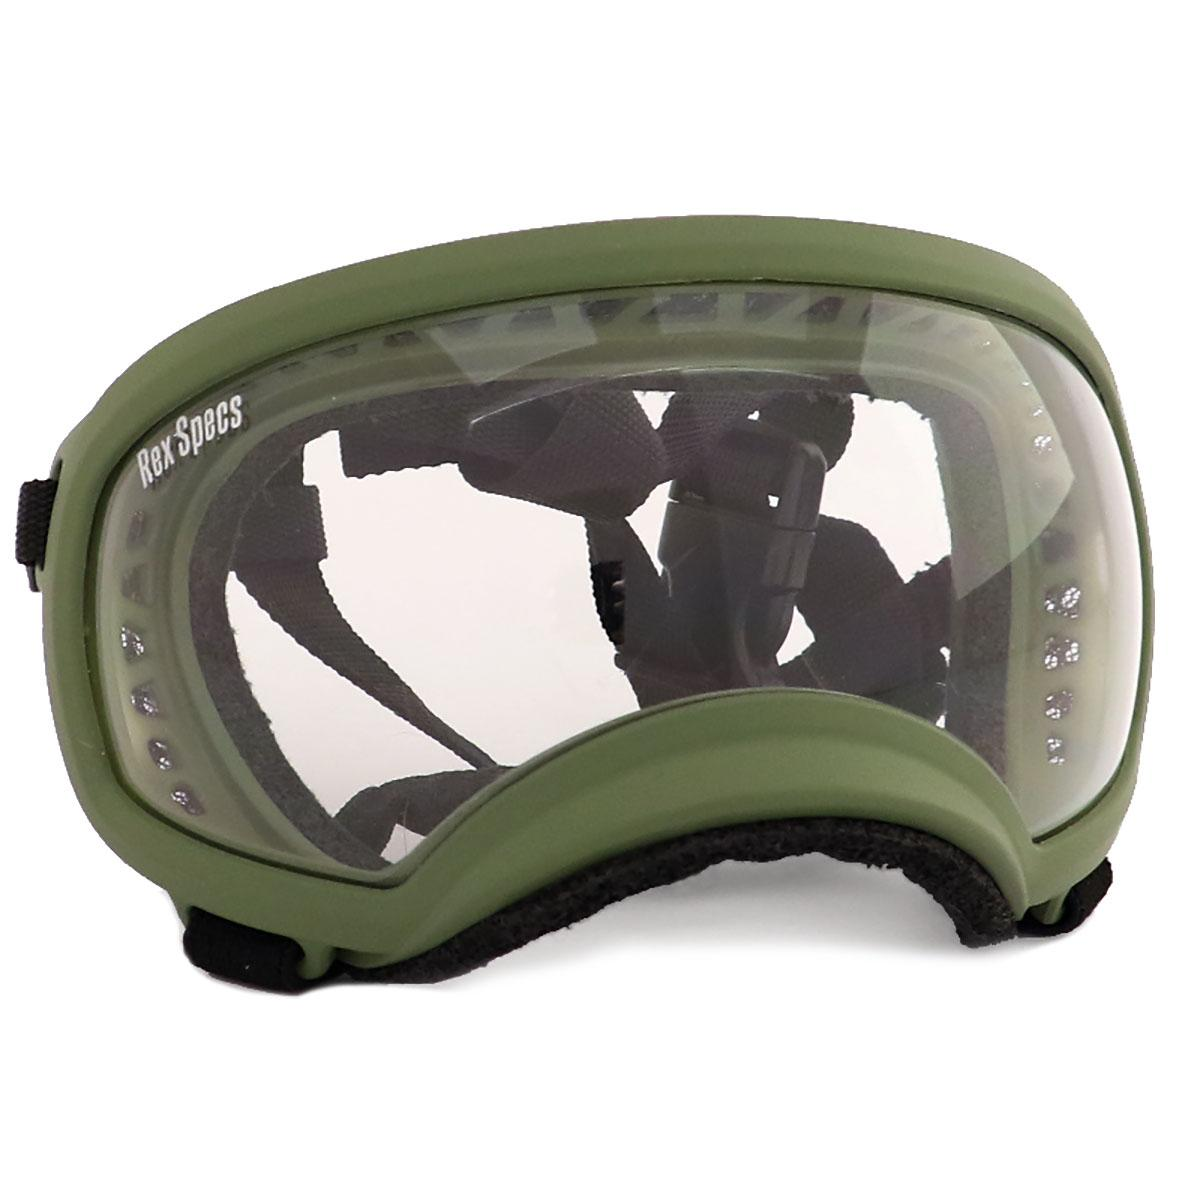 Rex Specs Dog Goggles - Army Green